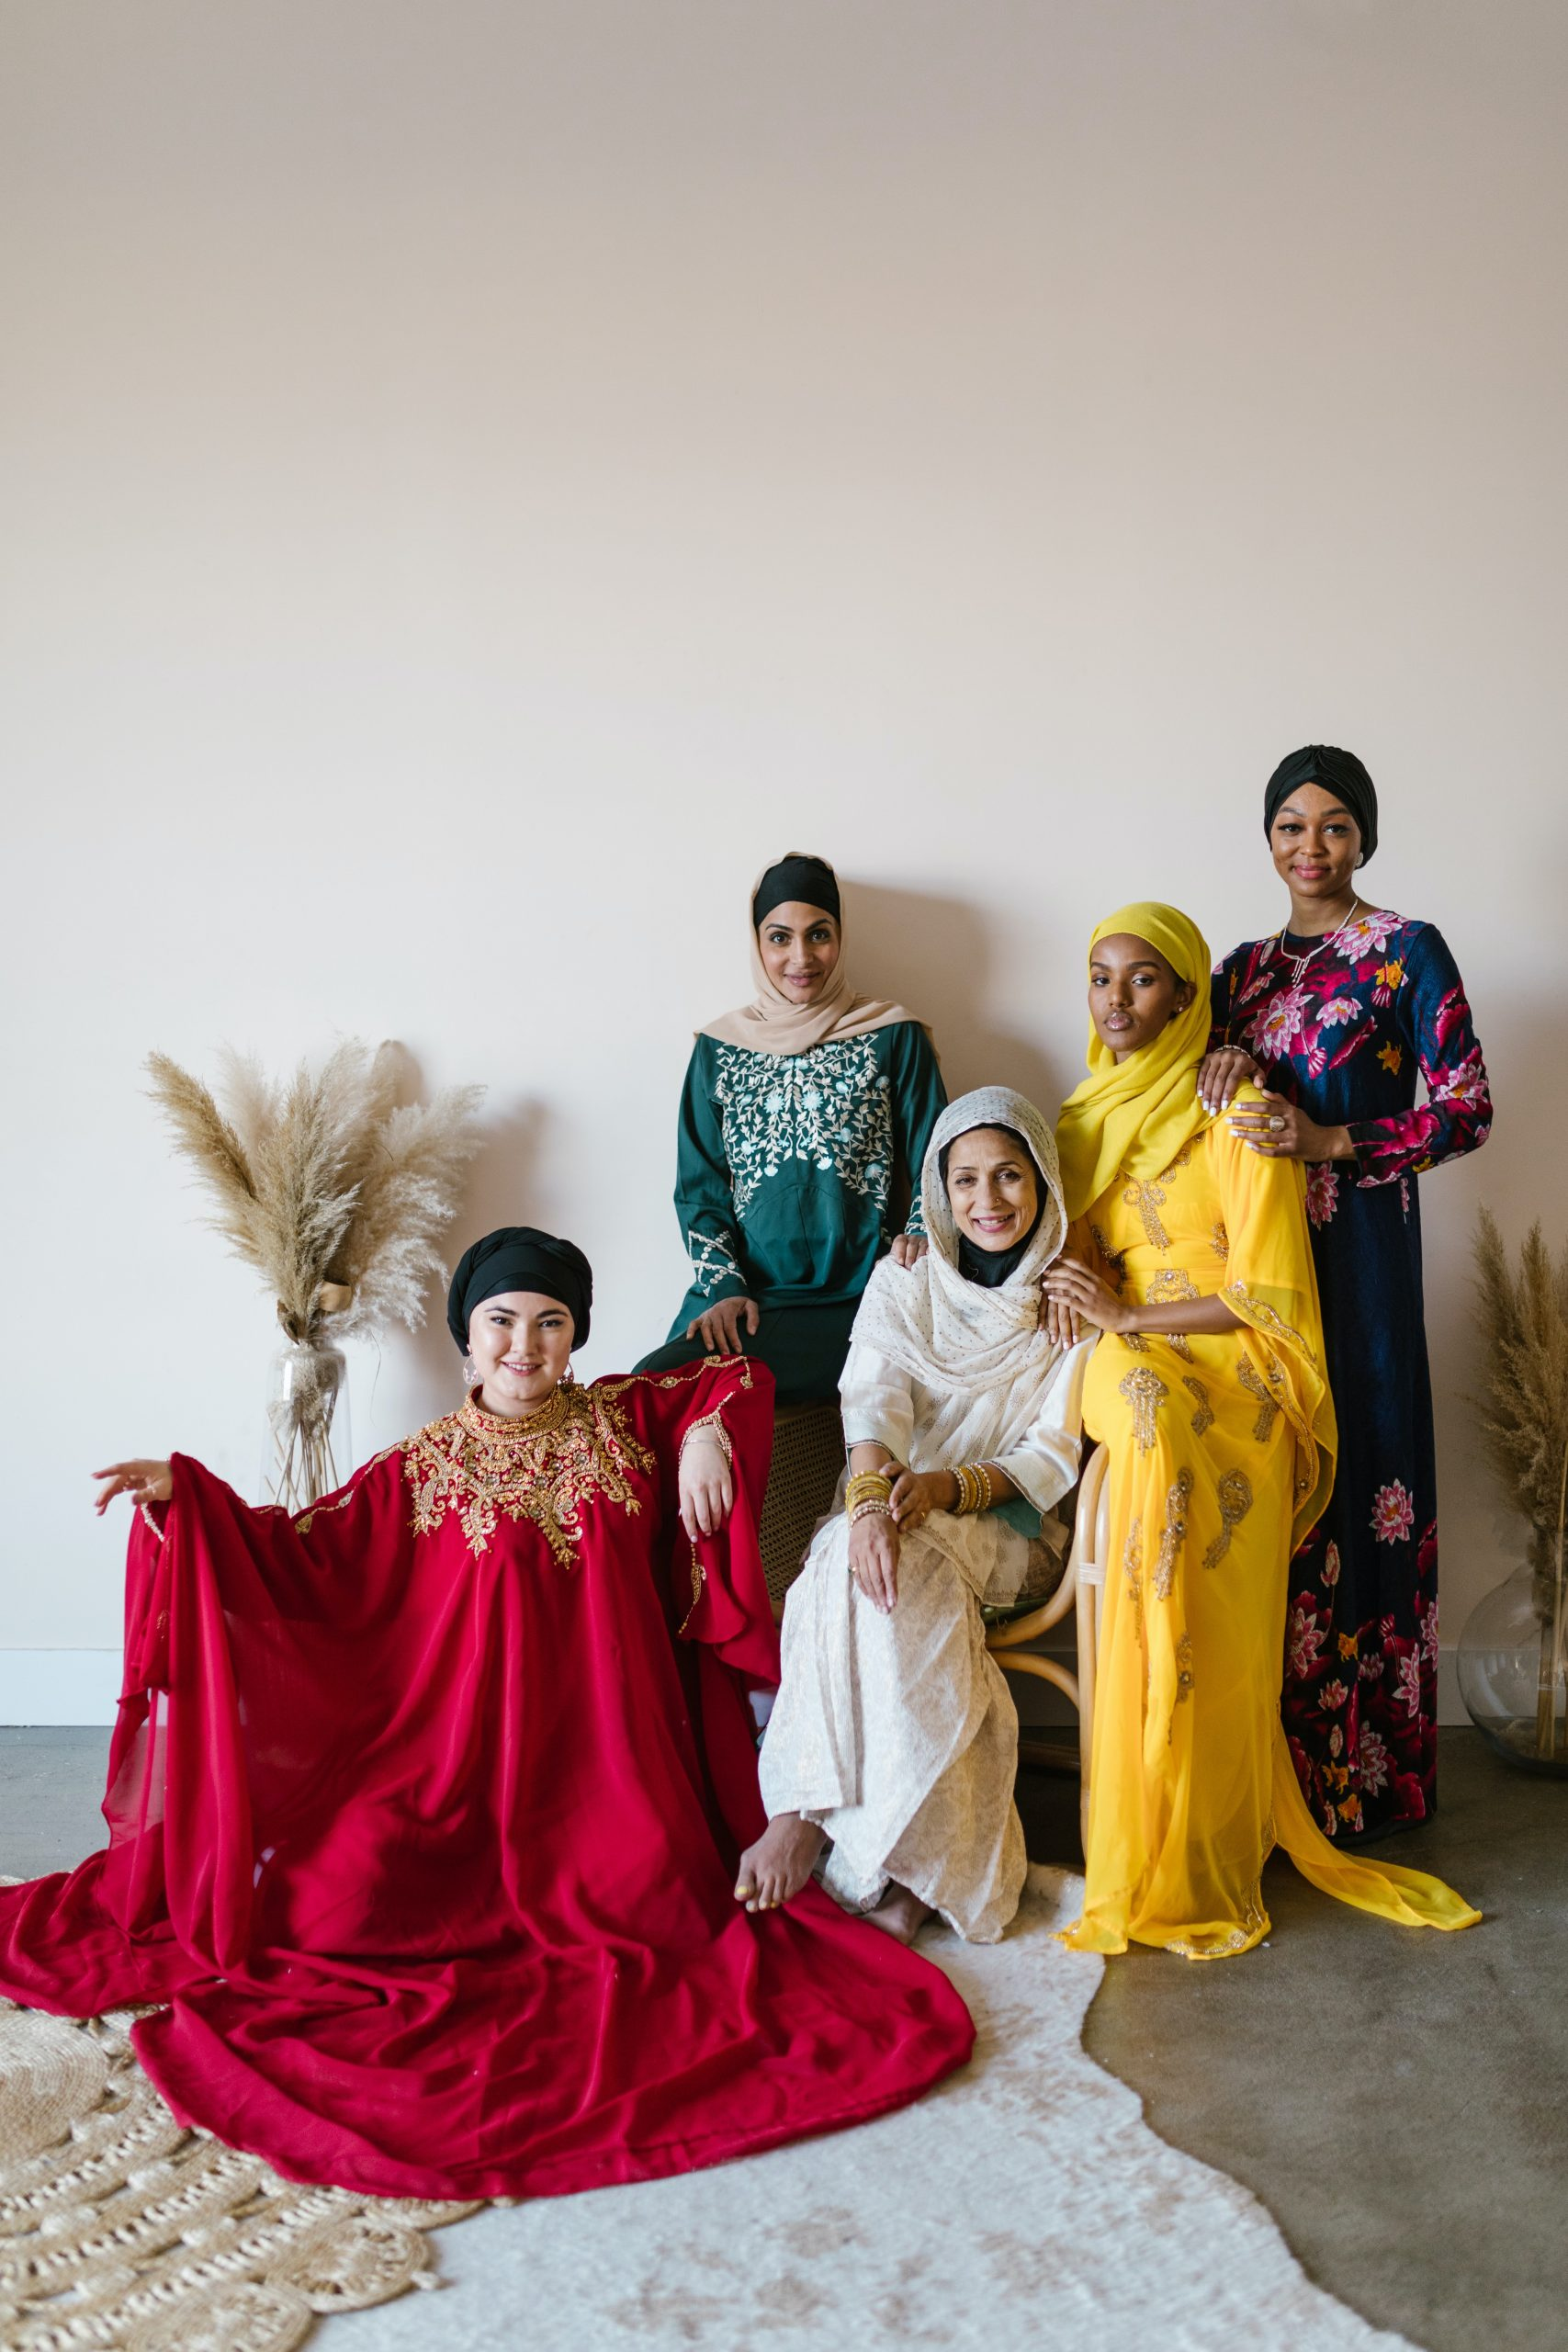 'What Ramadhan Means to Us': 8 Muslim Women Talk About the Joys and Challenges of Ramadhan